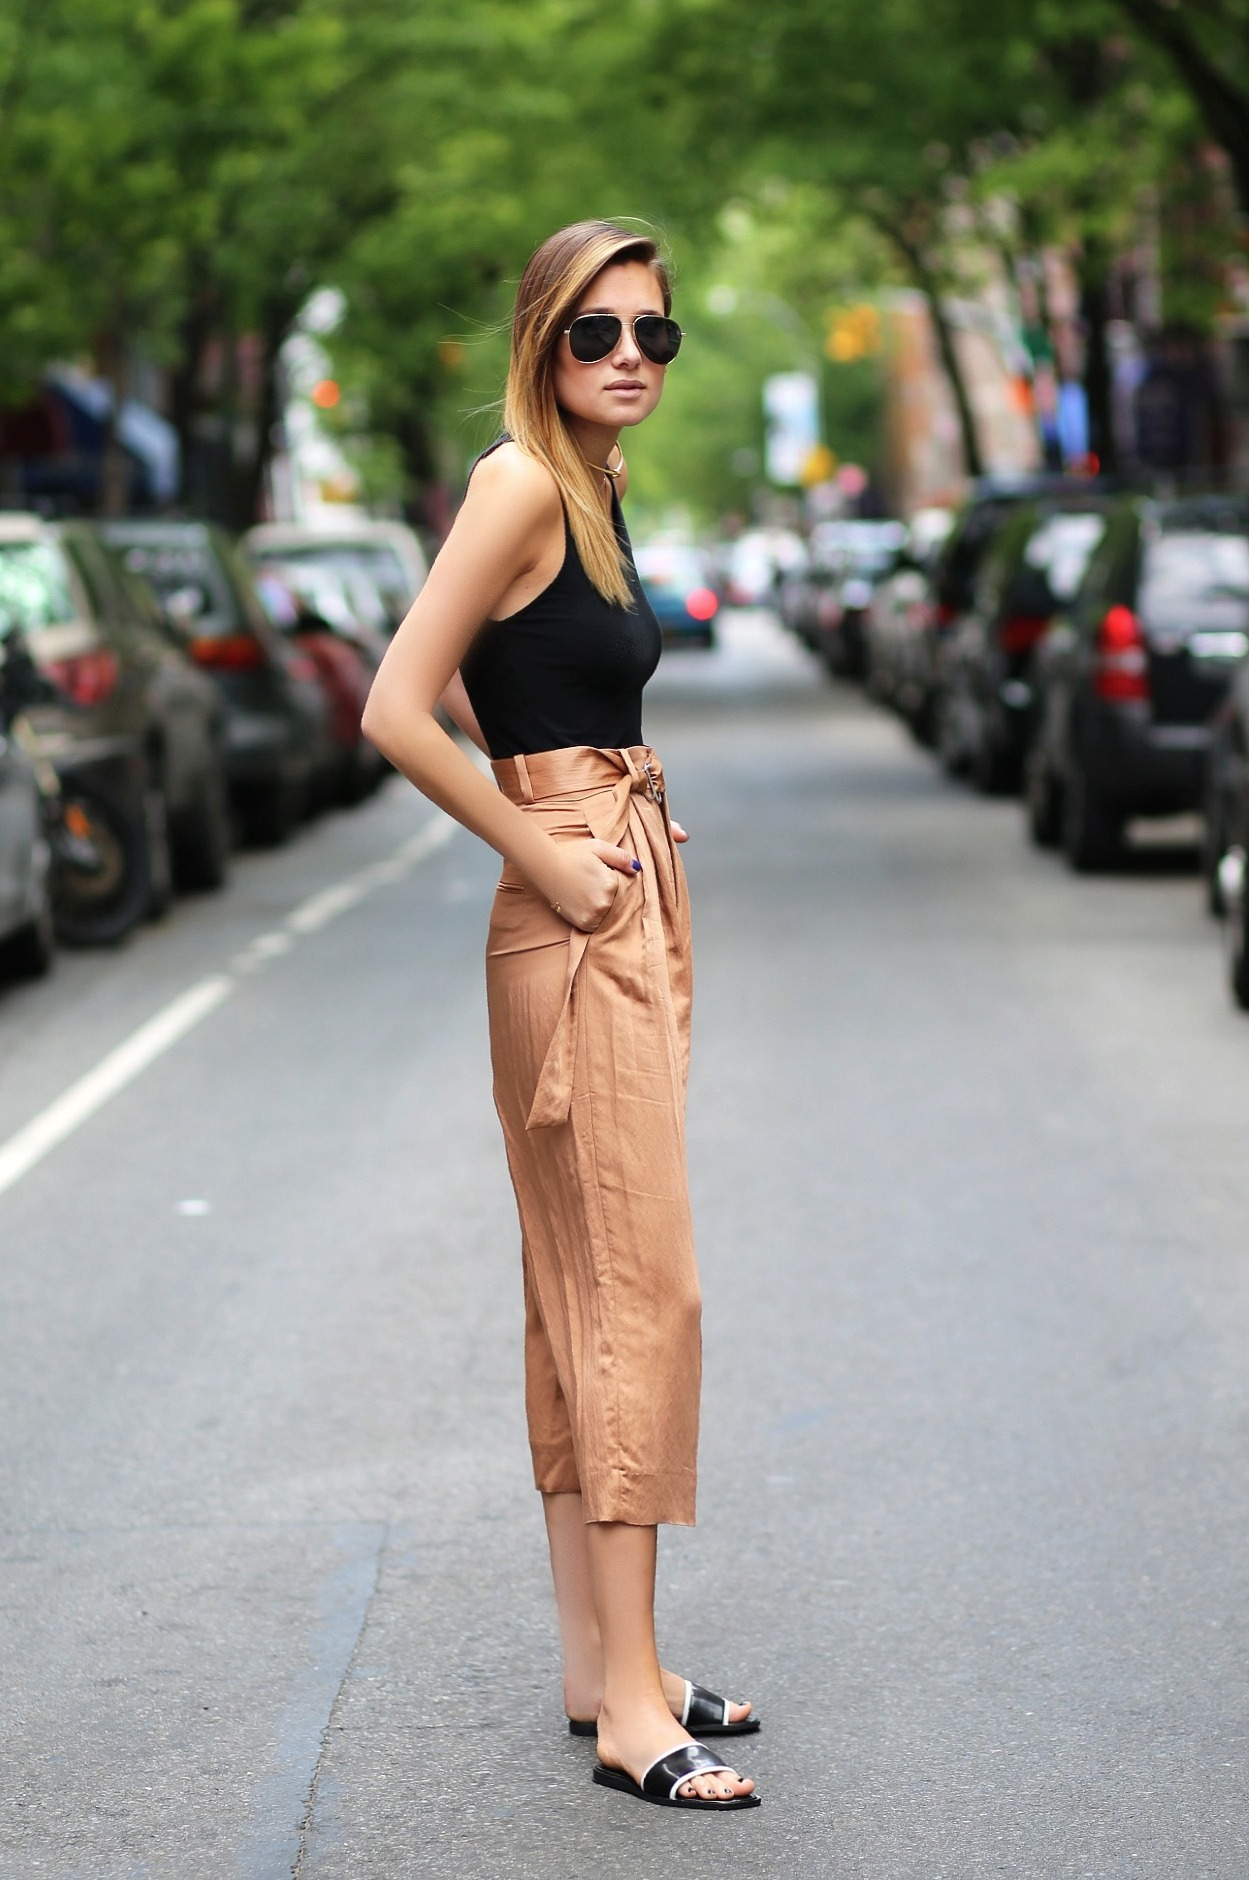 2.-chic-pants-and-tank-top-with-slides